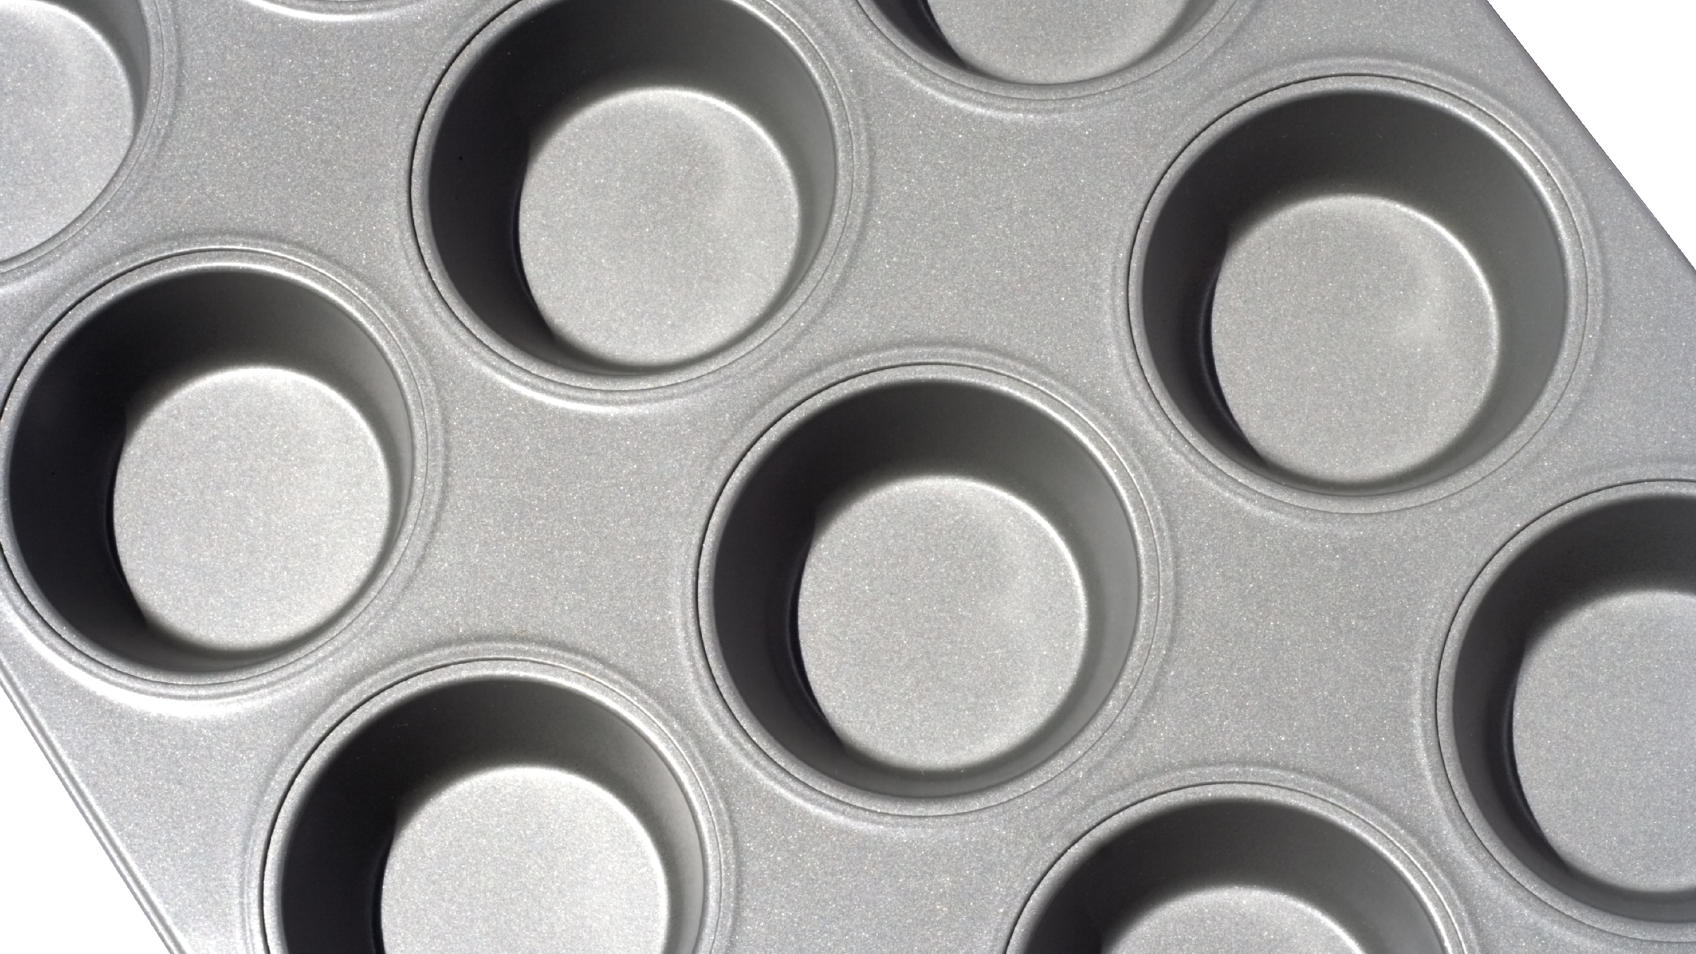 Bring out the muffin tin!